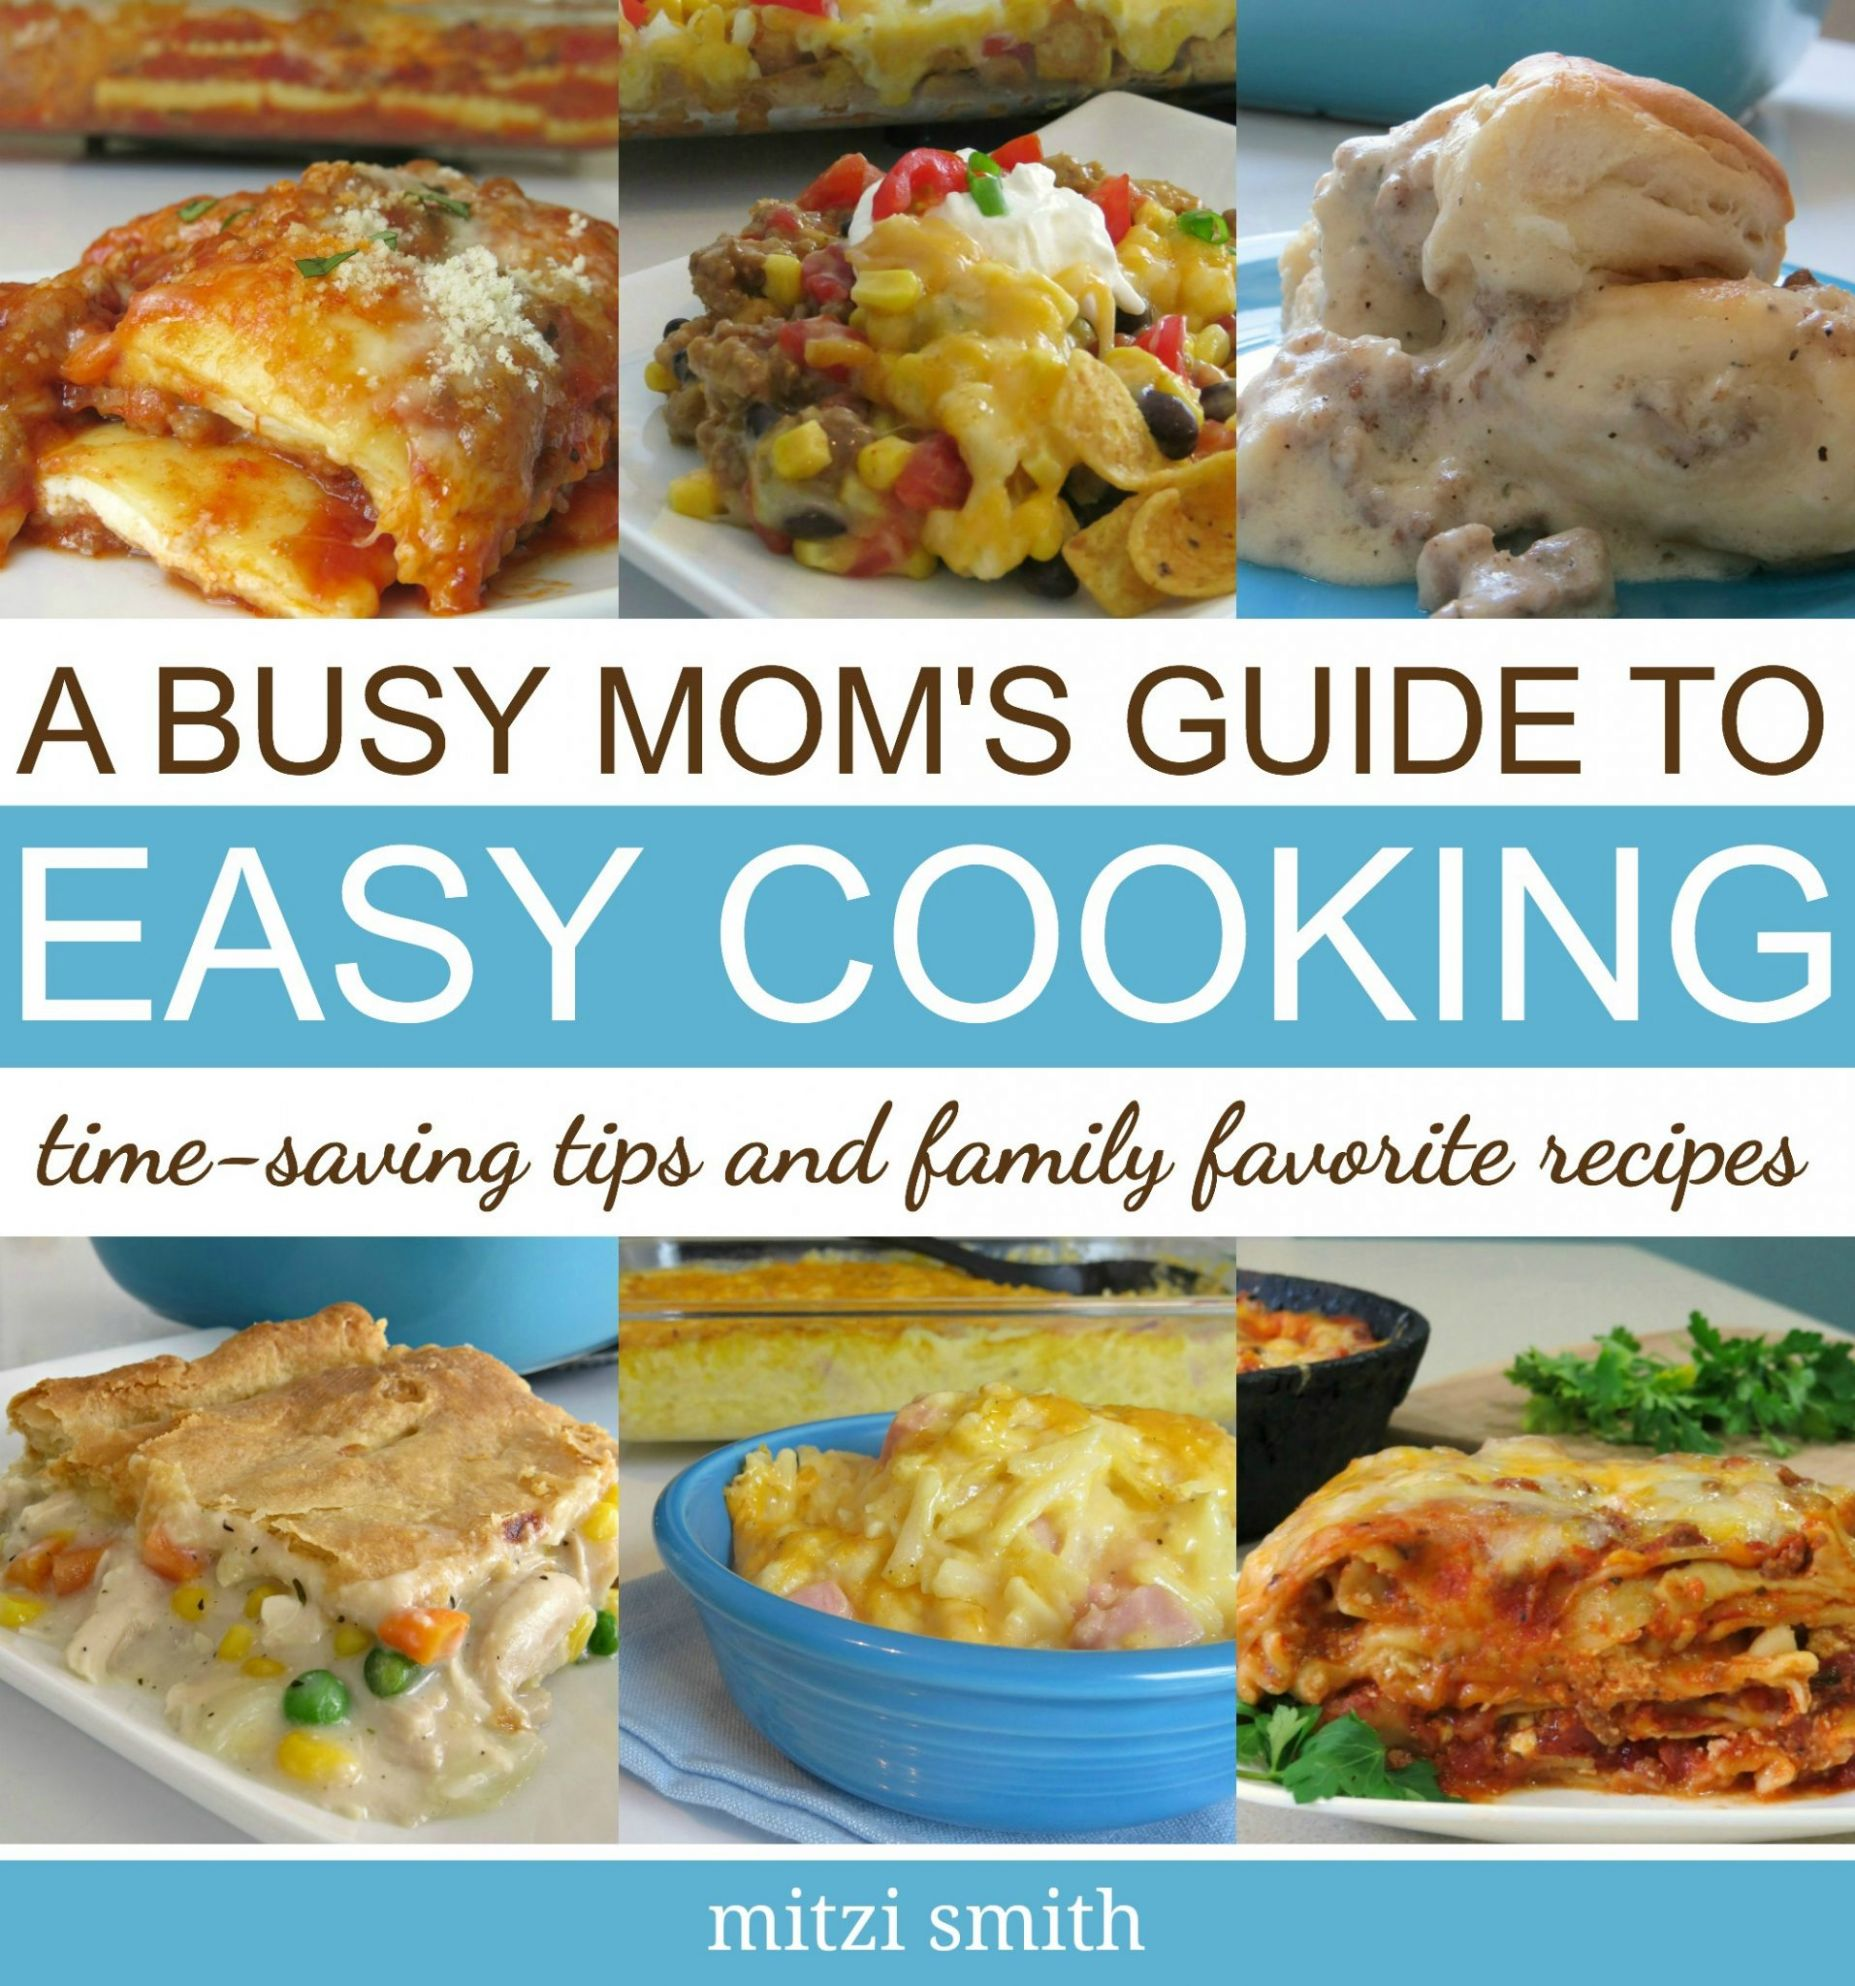 Quick Easy Cooking Guide - Written Reality - Easy Recipes Guide